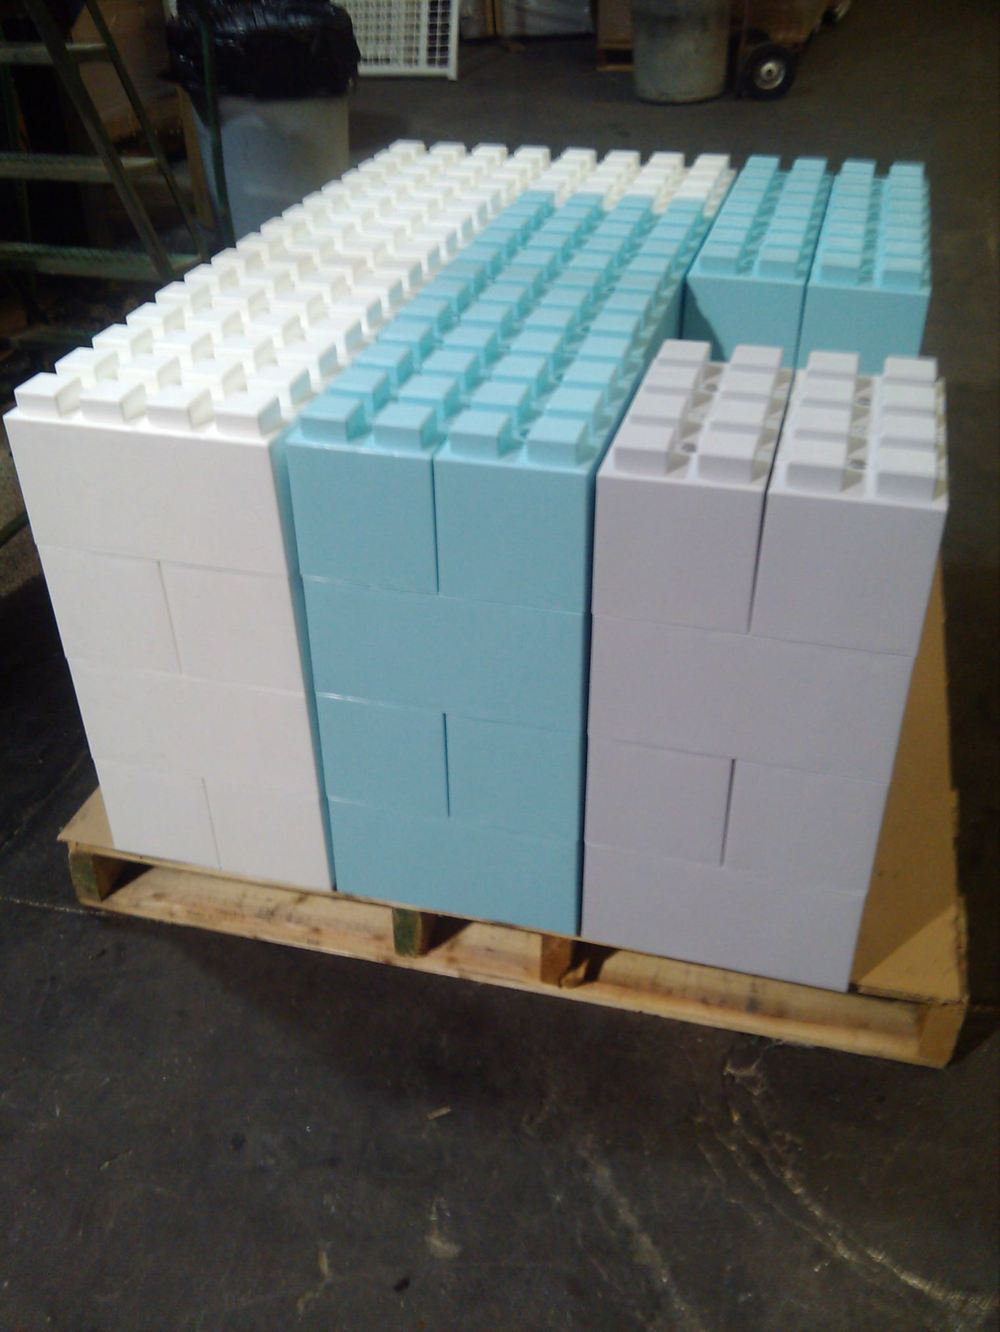 Modular blocks stack neatly on pallets for easy transport and storage